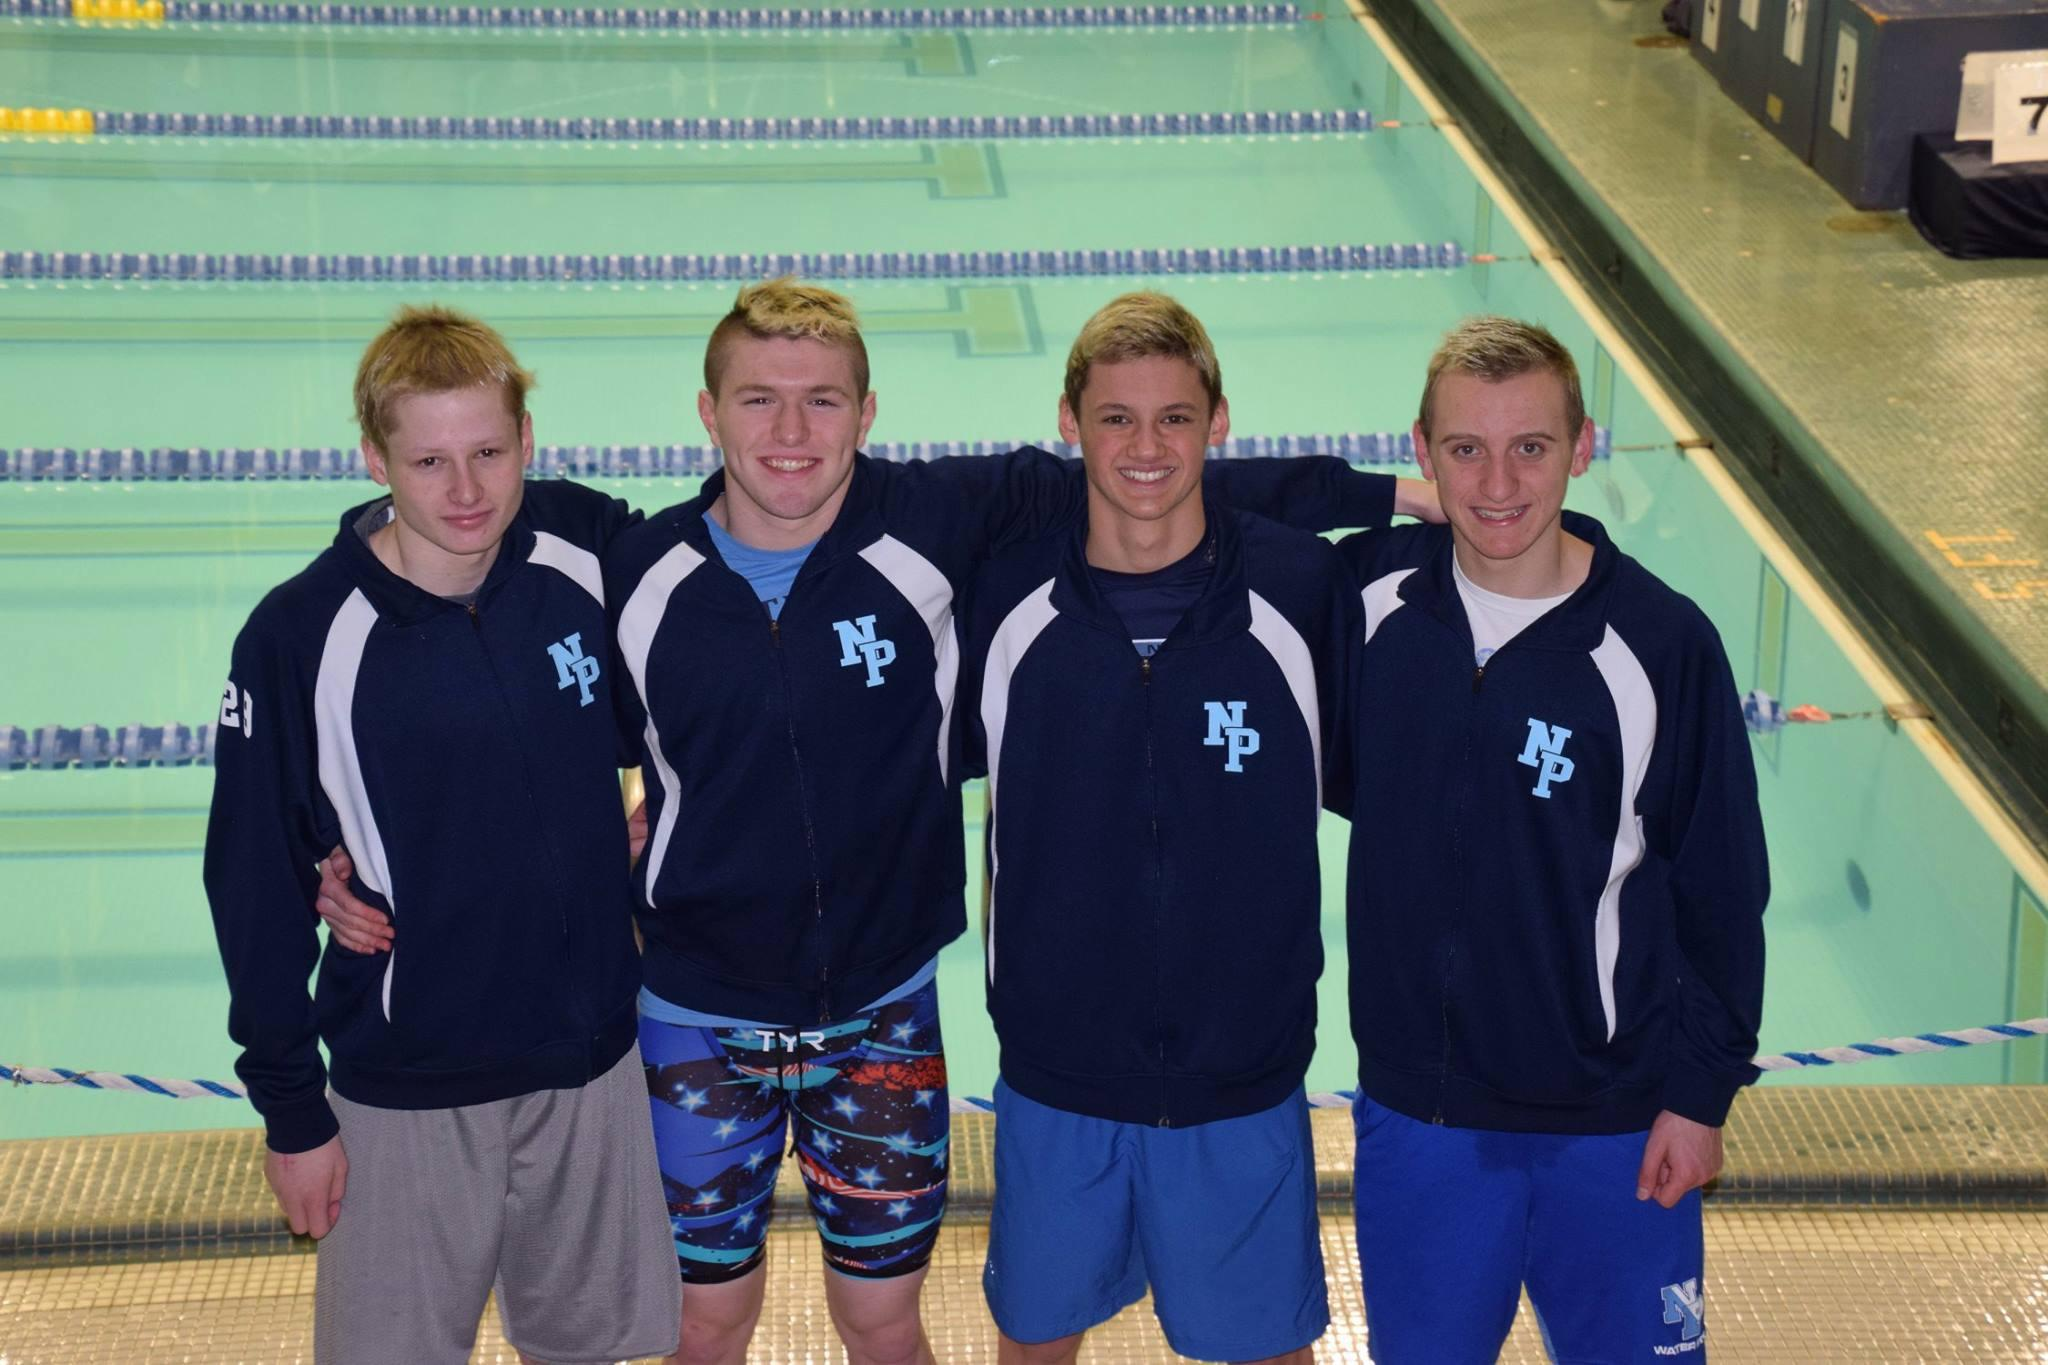 Noah Jamieson, second from the left, poses for a photo with his teammates.